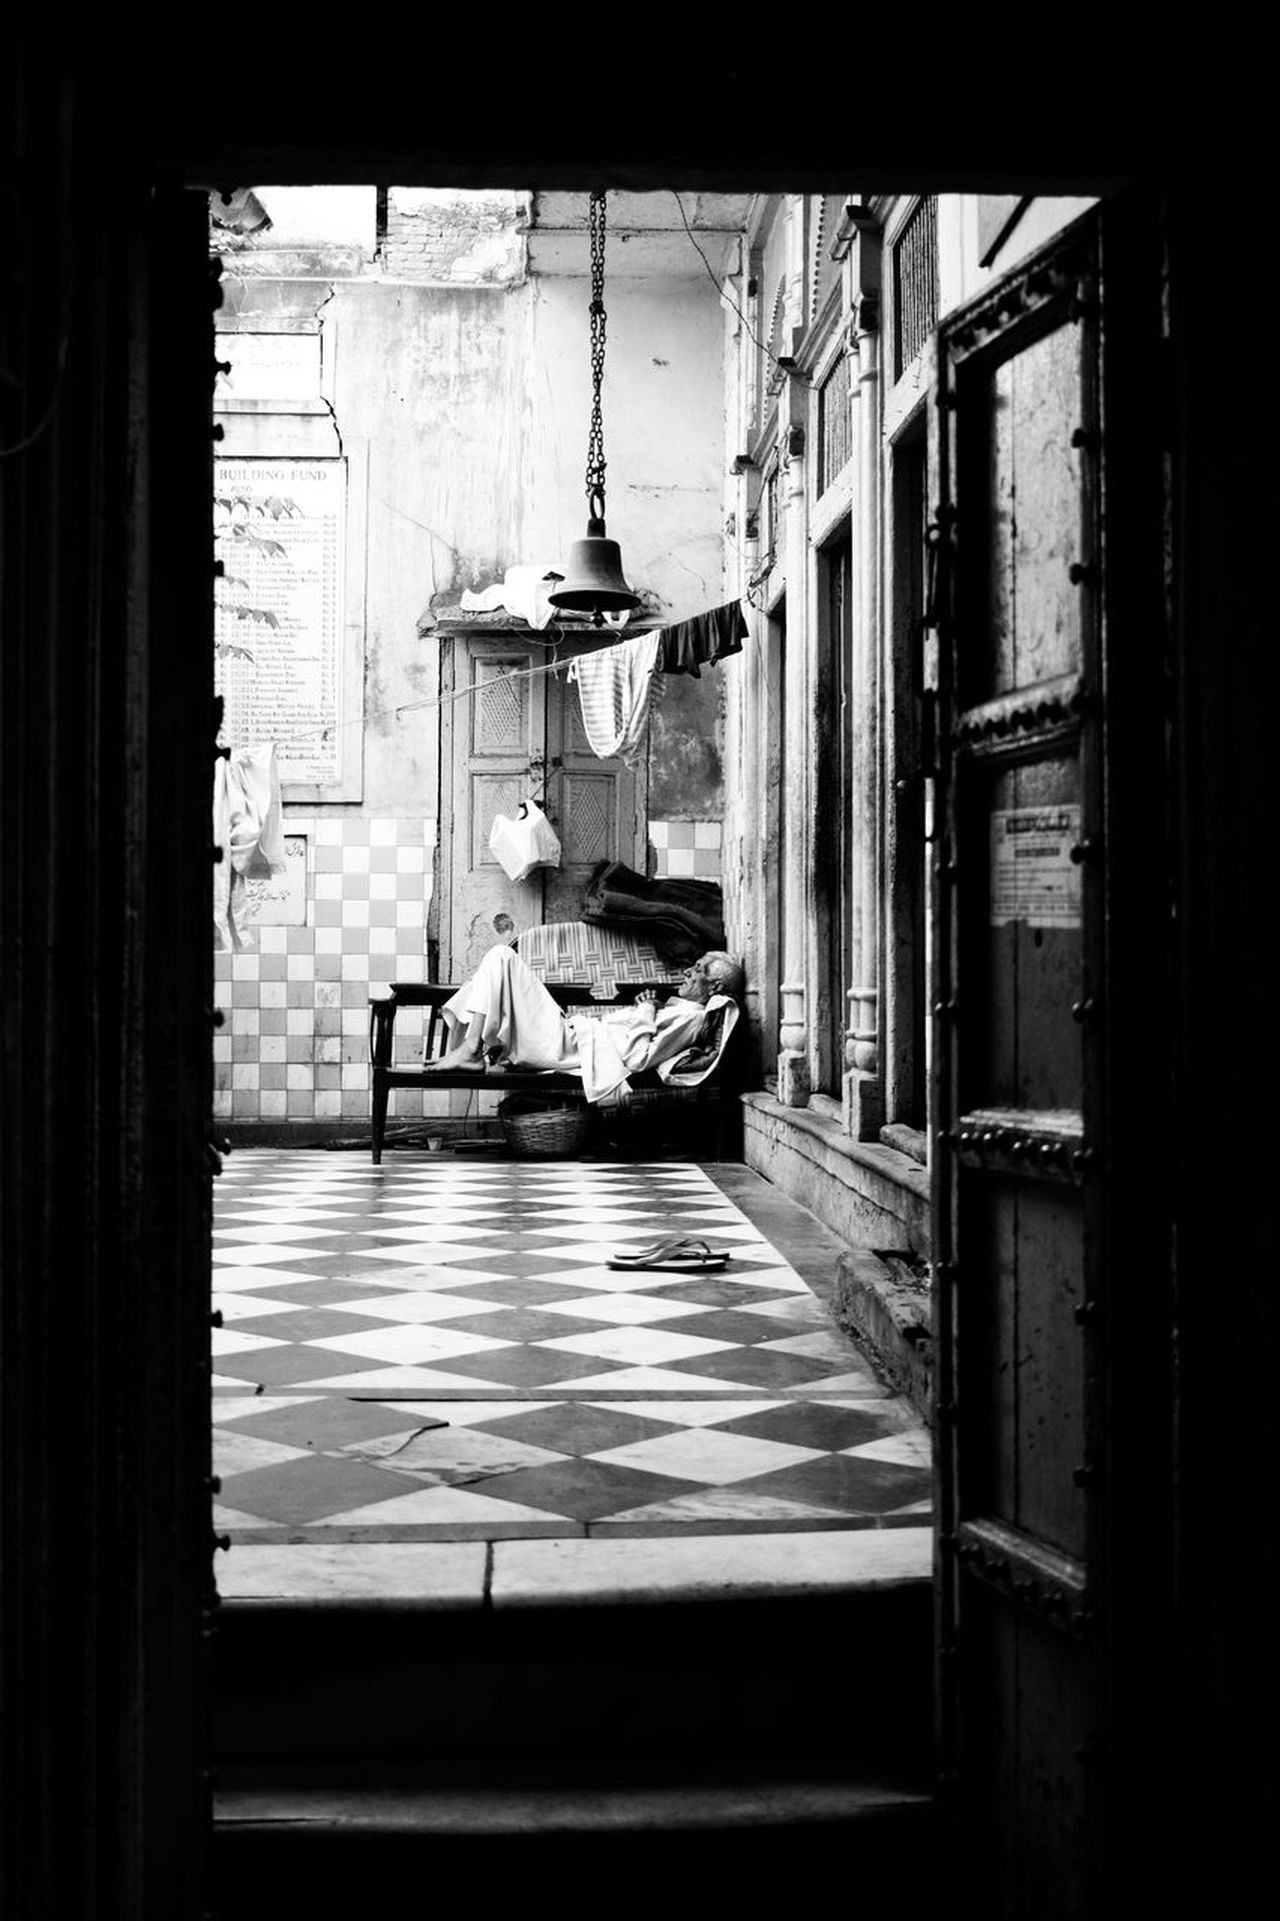 Indoors  Luxury Day No People Framing Sleeping People Candid Photography Nikond3300 Chandnichowk Street Dharampura Architecture Building Exterior